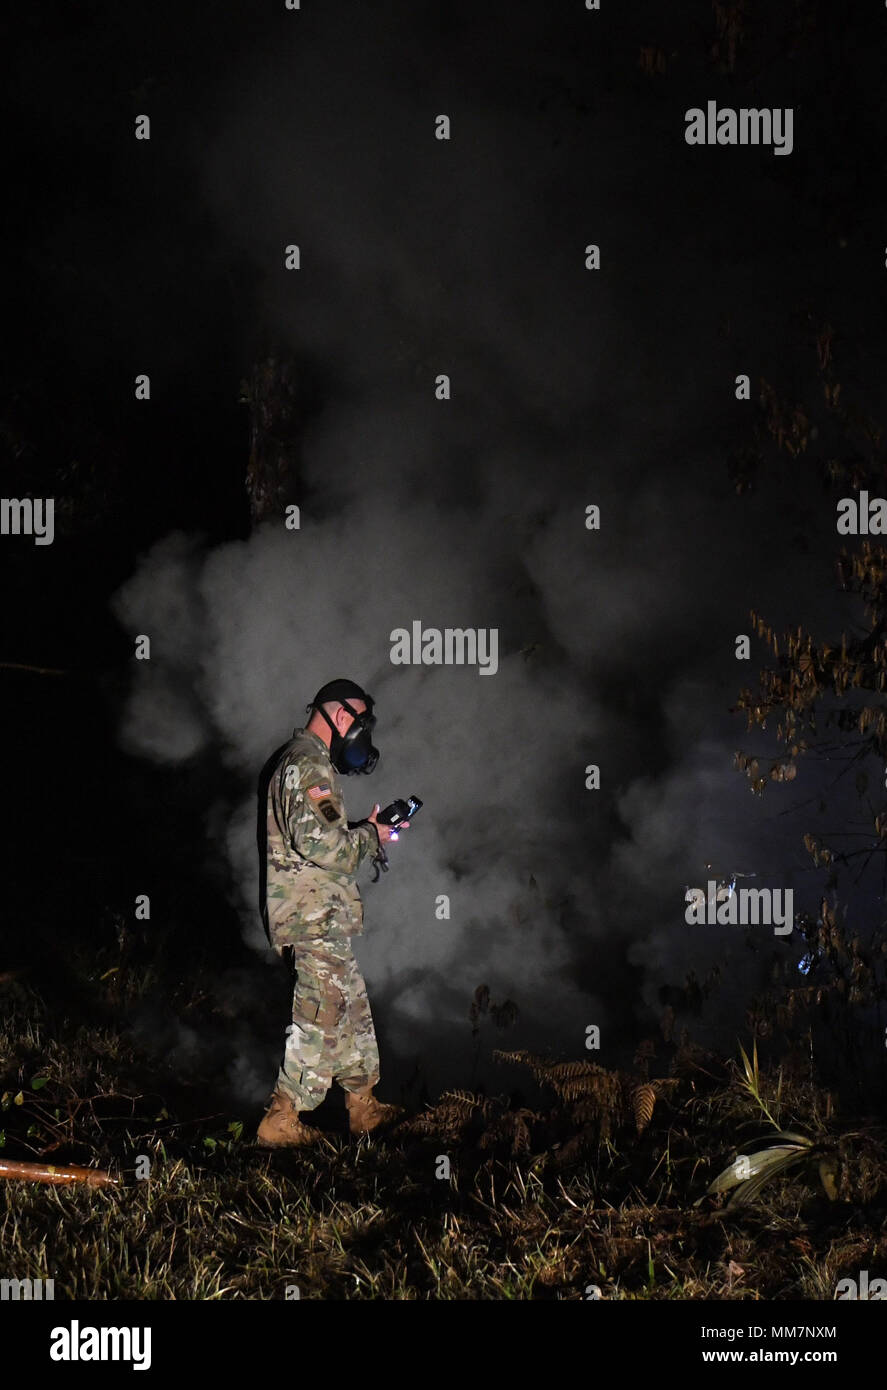 (180510) -- HAWAII, May 10, 2018 (Xinhua) -- A U.S.army officer checks on sulphur dioxide levels at the 13th fissure in Leilani Estate, Hawaii, United States, May 10, 2018. According to reports of the Hawaii State government, eruptions of the Kilauea Volcano had forced the evacuation of thousands of people. (Xinhua/Tao Xiyi) (zxj) - Stock Image